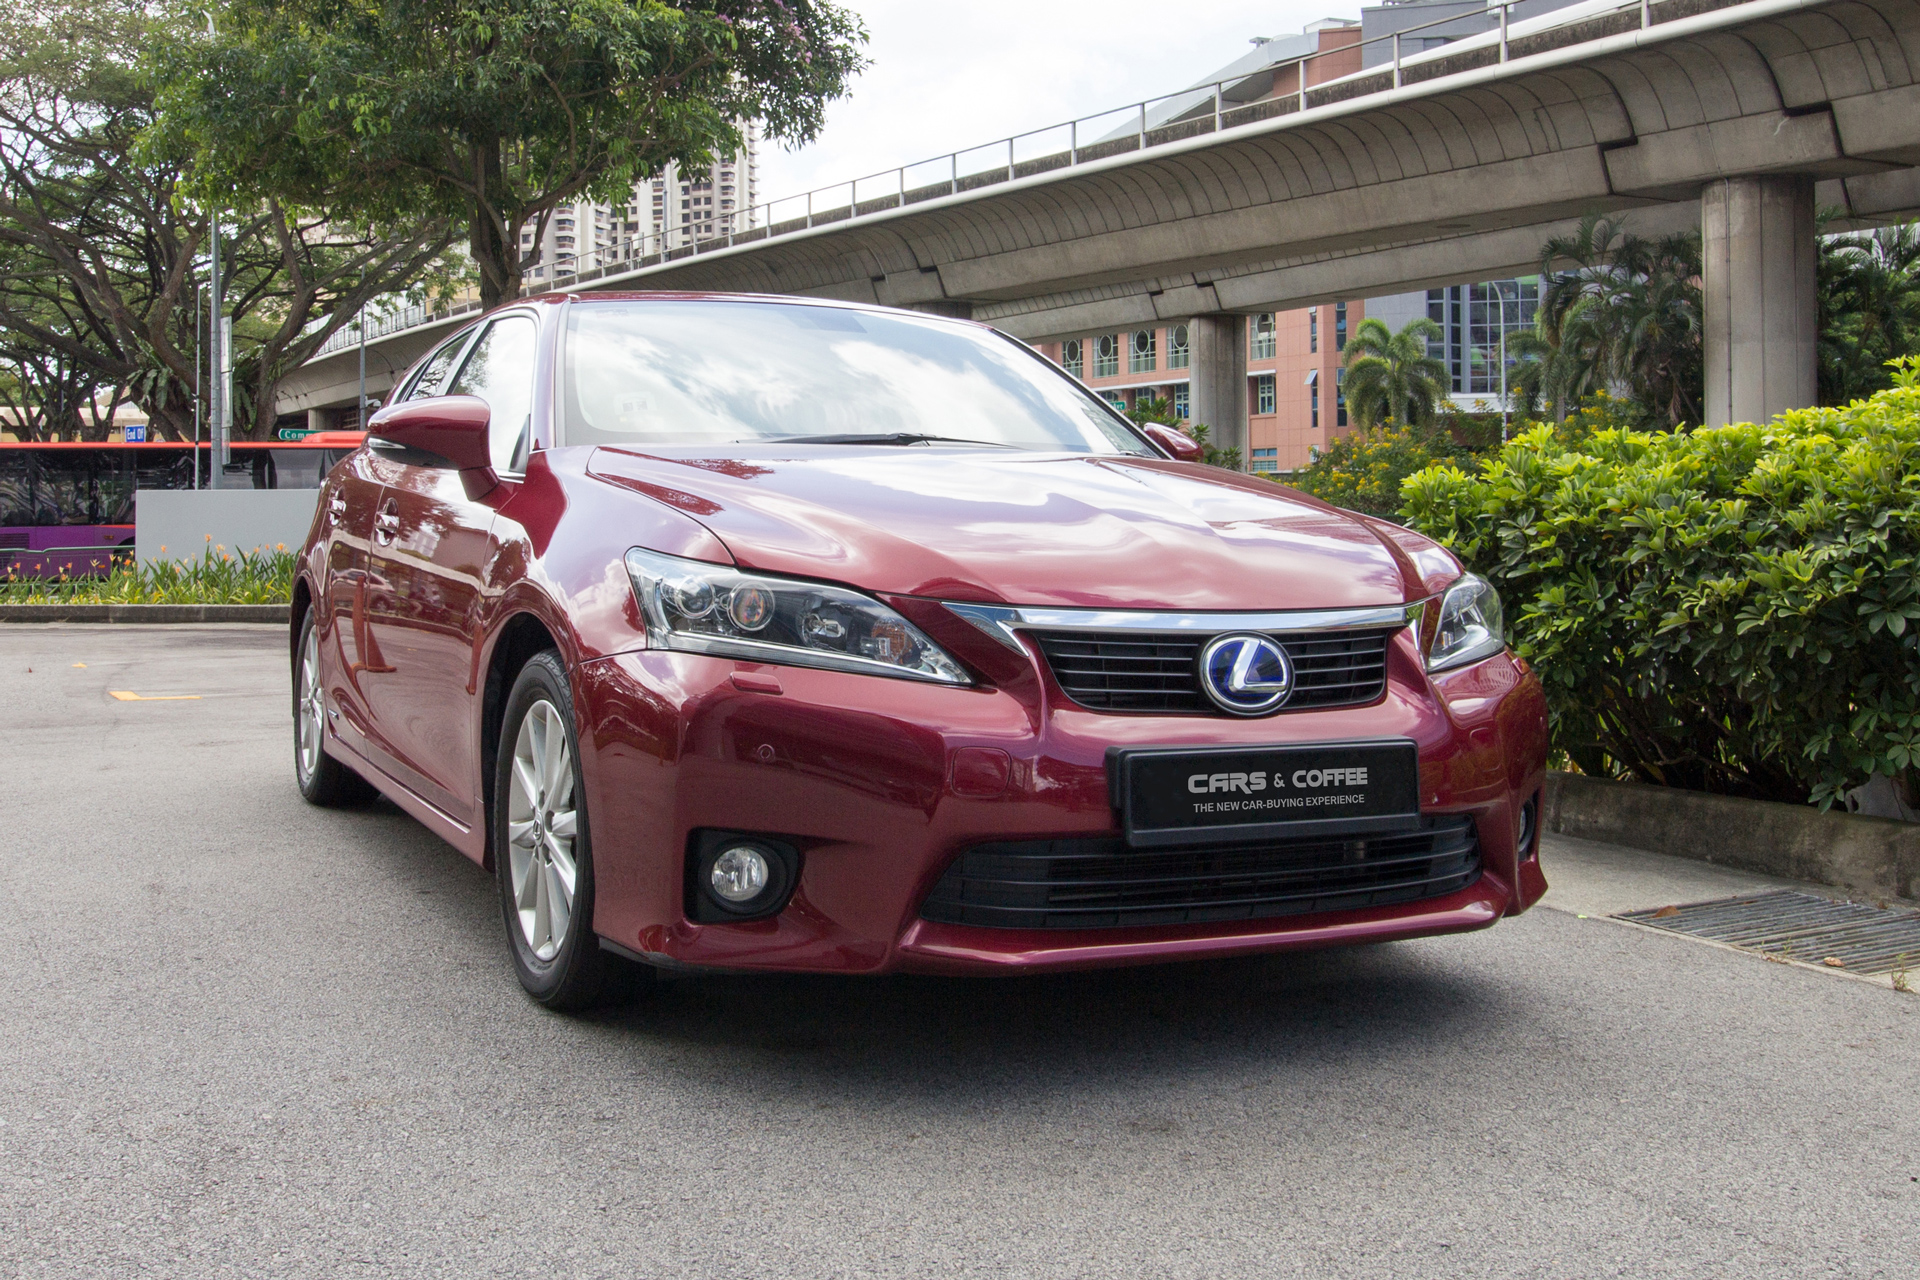 Certified Pre-Owned Lexus CT Hybrid CT200h Premium | Cars and Coffee Singapore